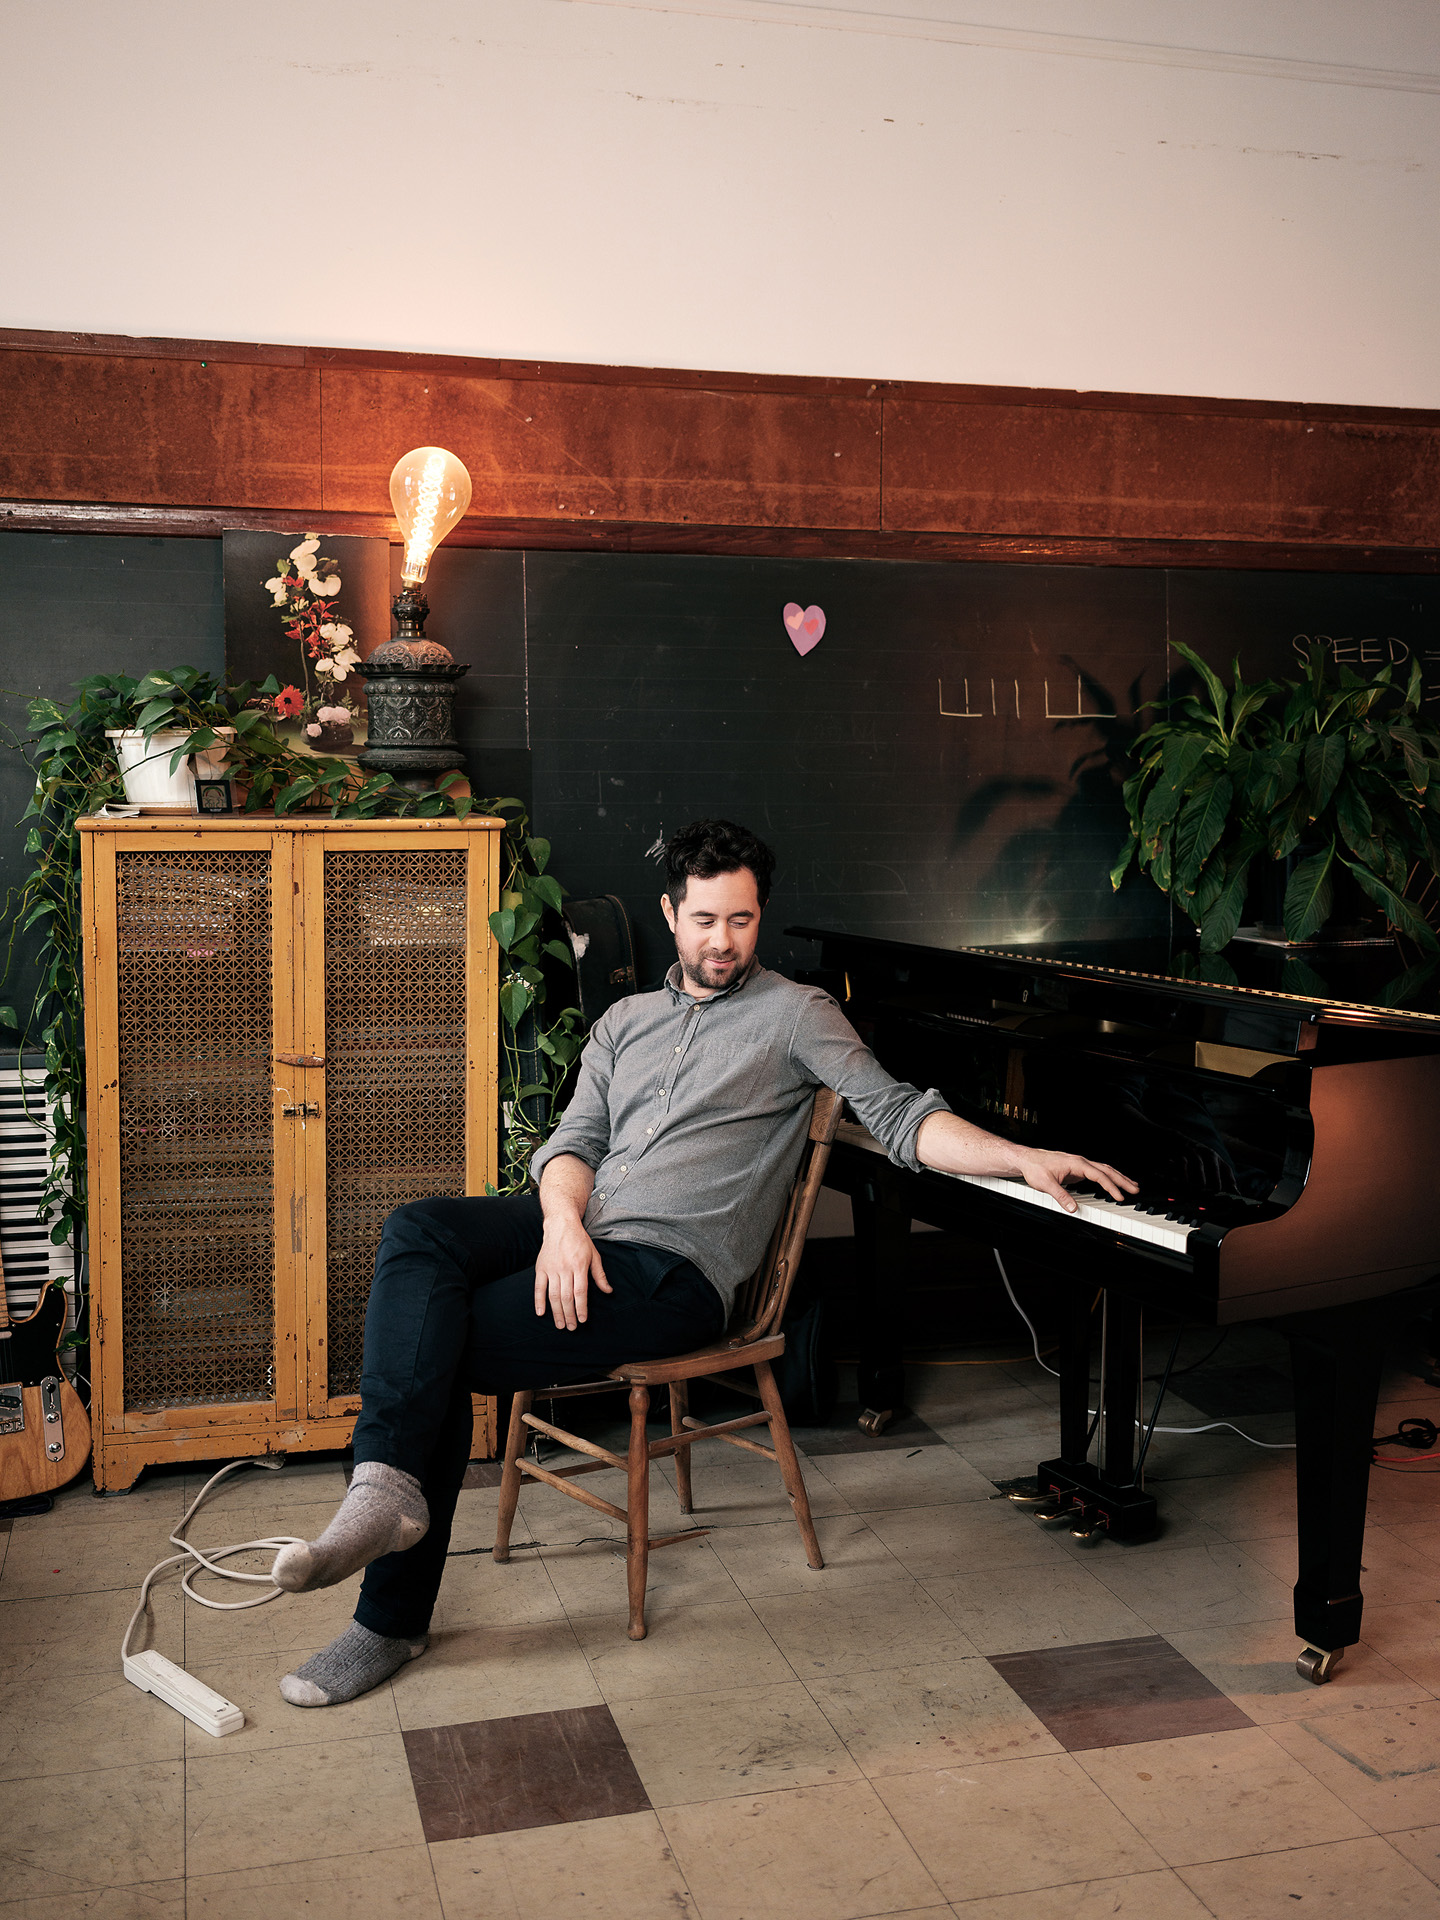 singer Jean-Michel Blais sitting on wooden chair in front of piano one hand on the keys wearing grey shirt black pants socks and no shoes photographed by Guillaume Simoneau for Voir's magazine cover